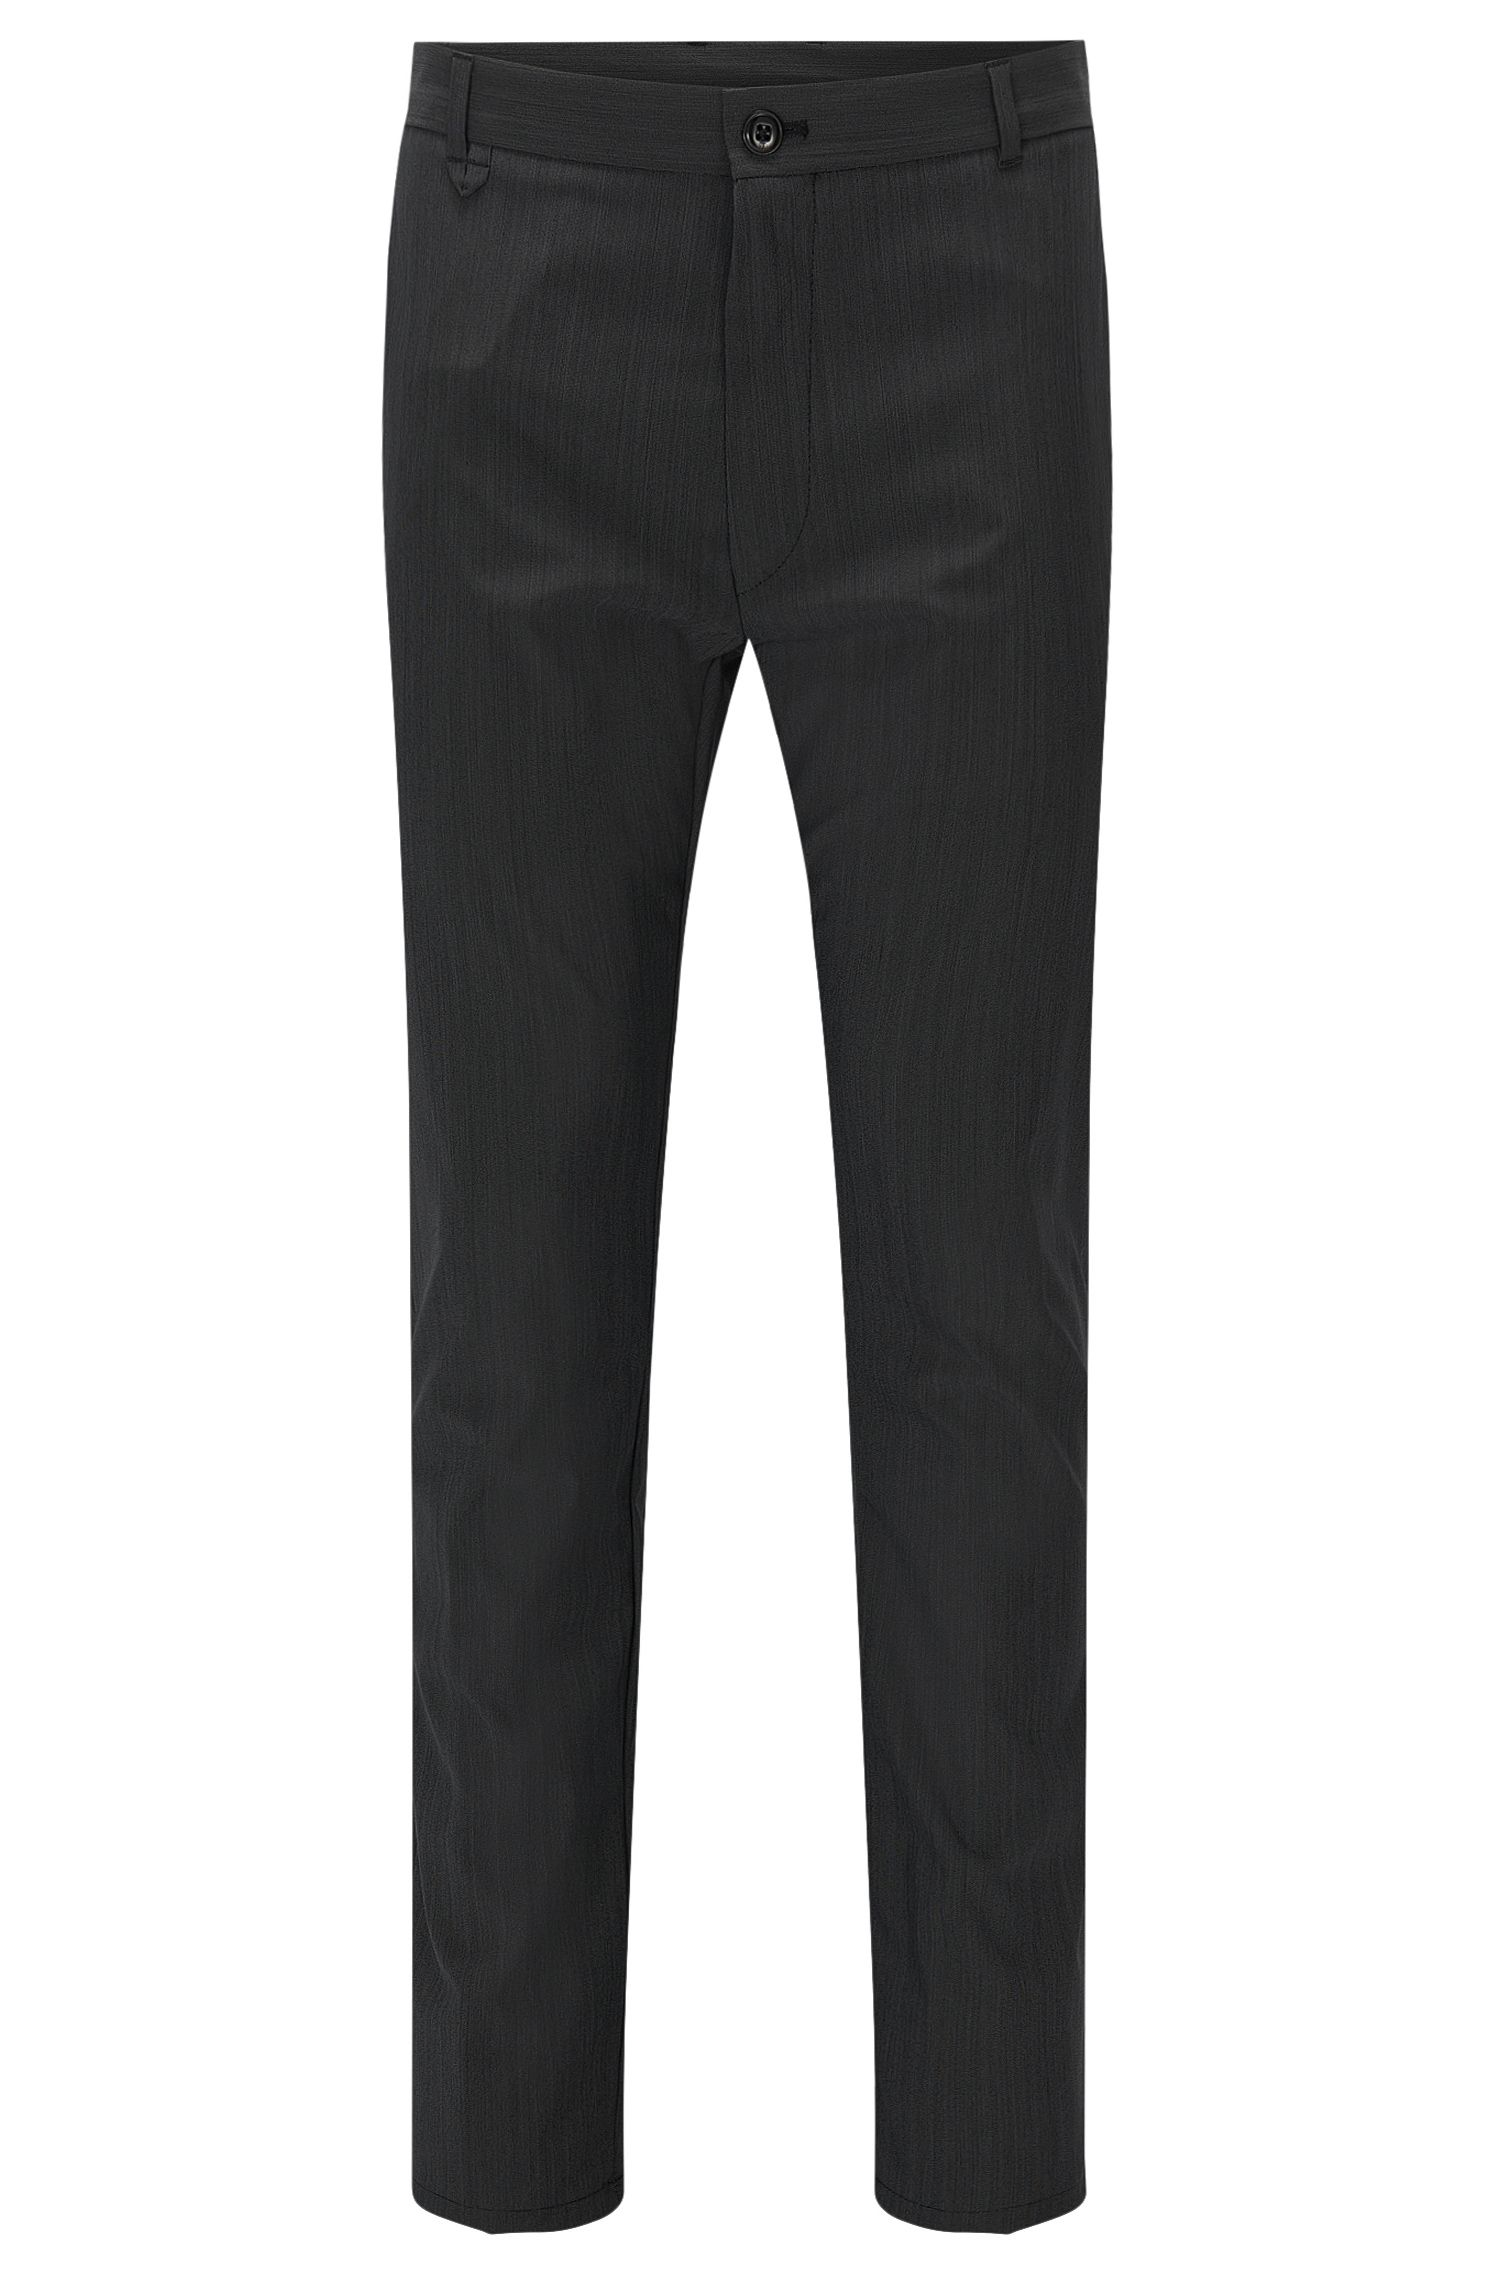 Virgin Wool Blend Pants, Slim Fit | Heldor